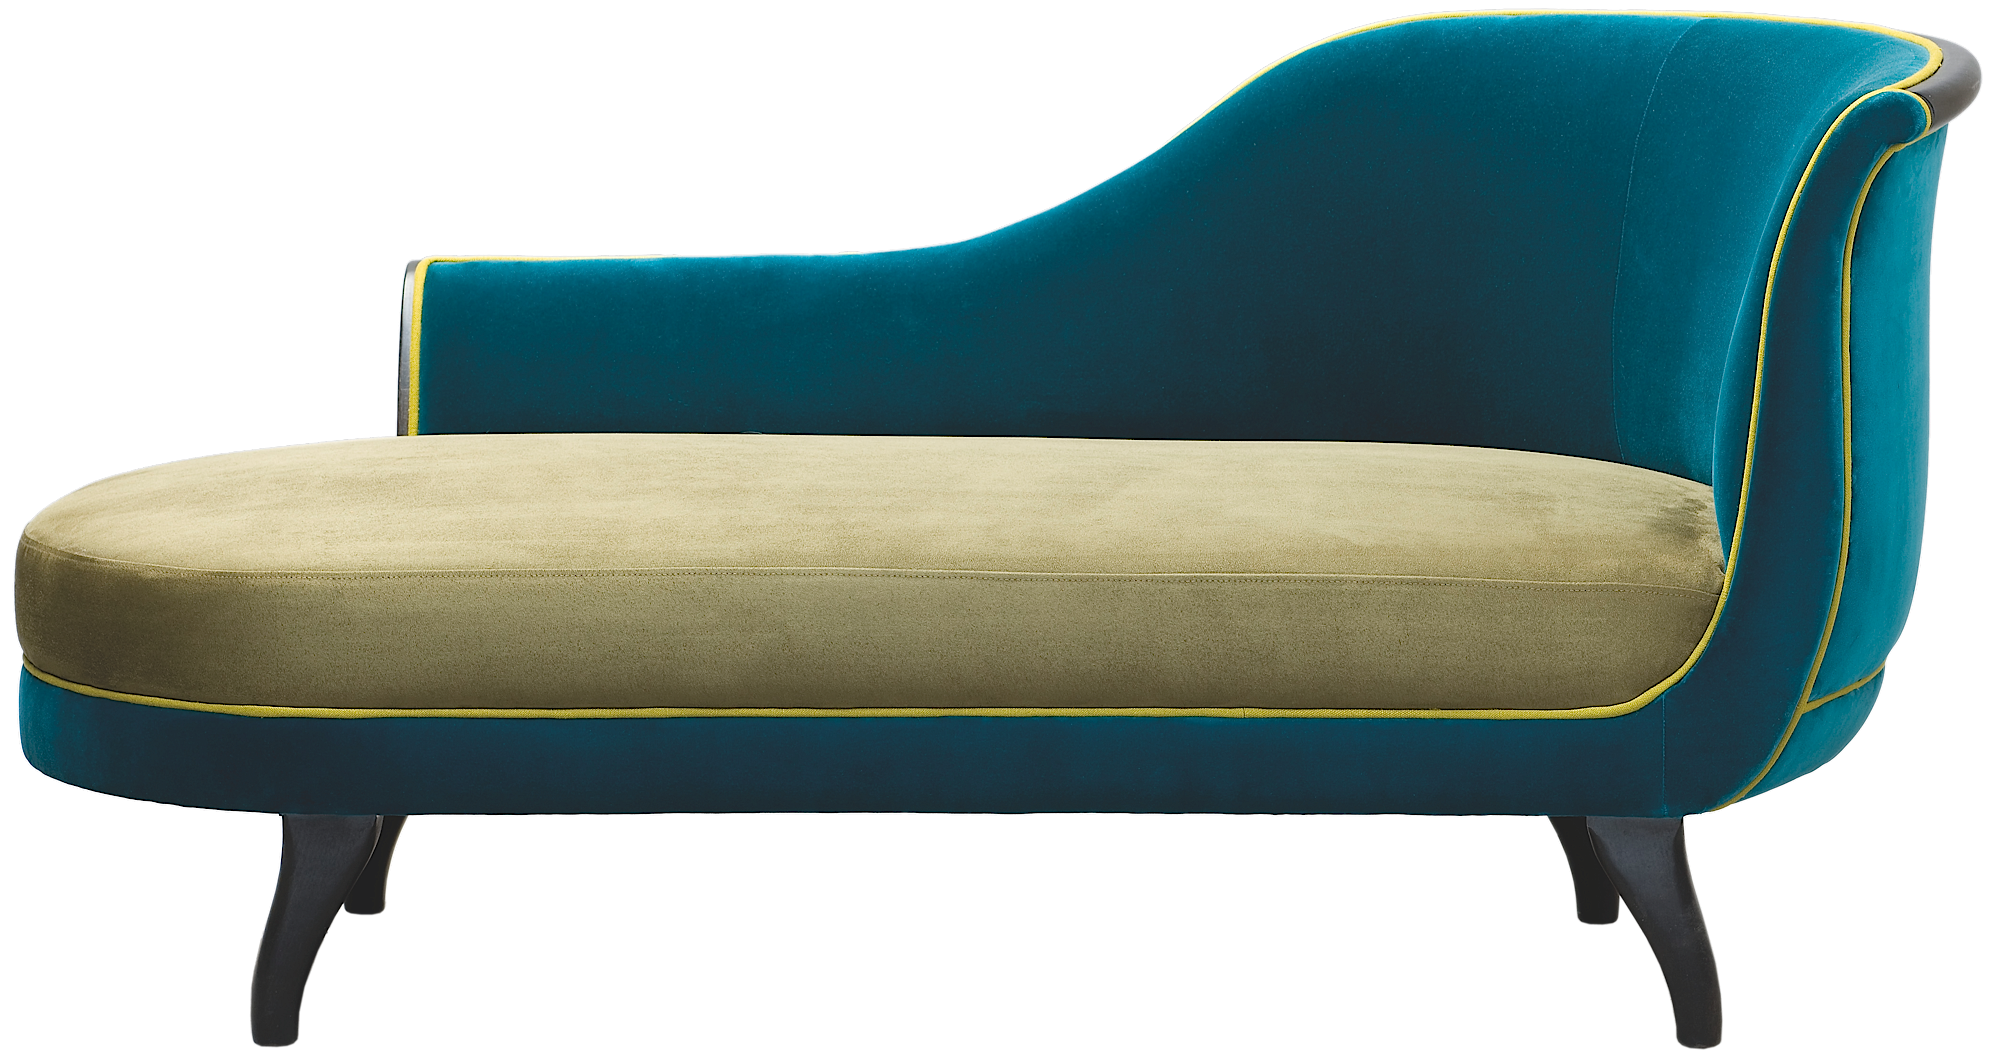 Chaise Lounge PNG Transparent.